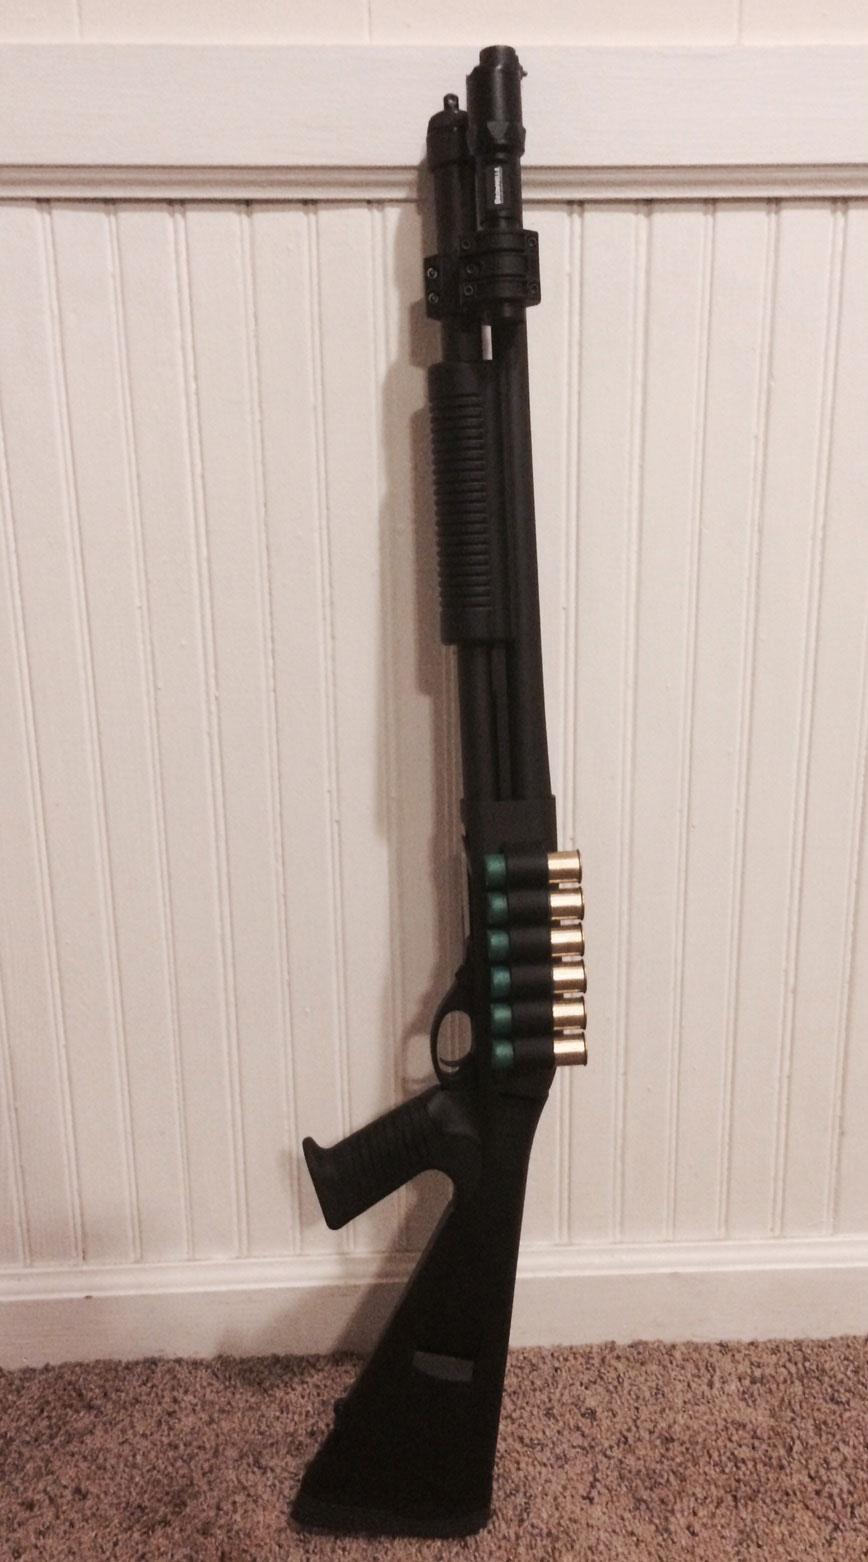 remington870_sidesaddle